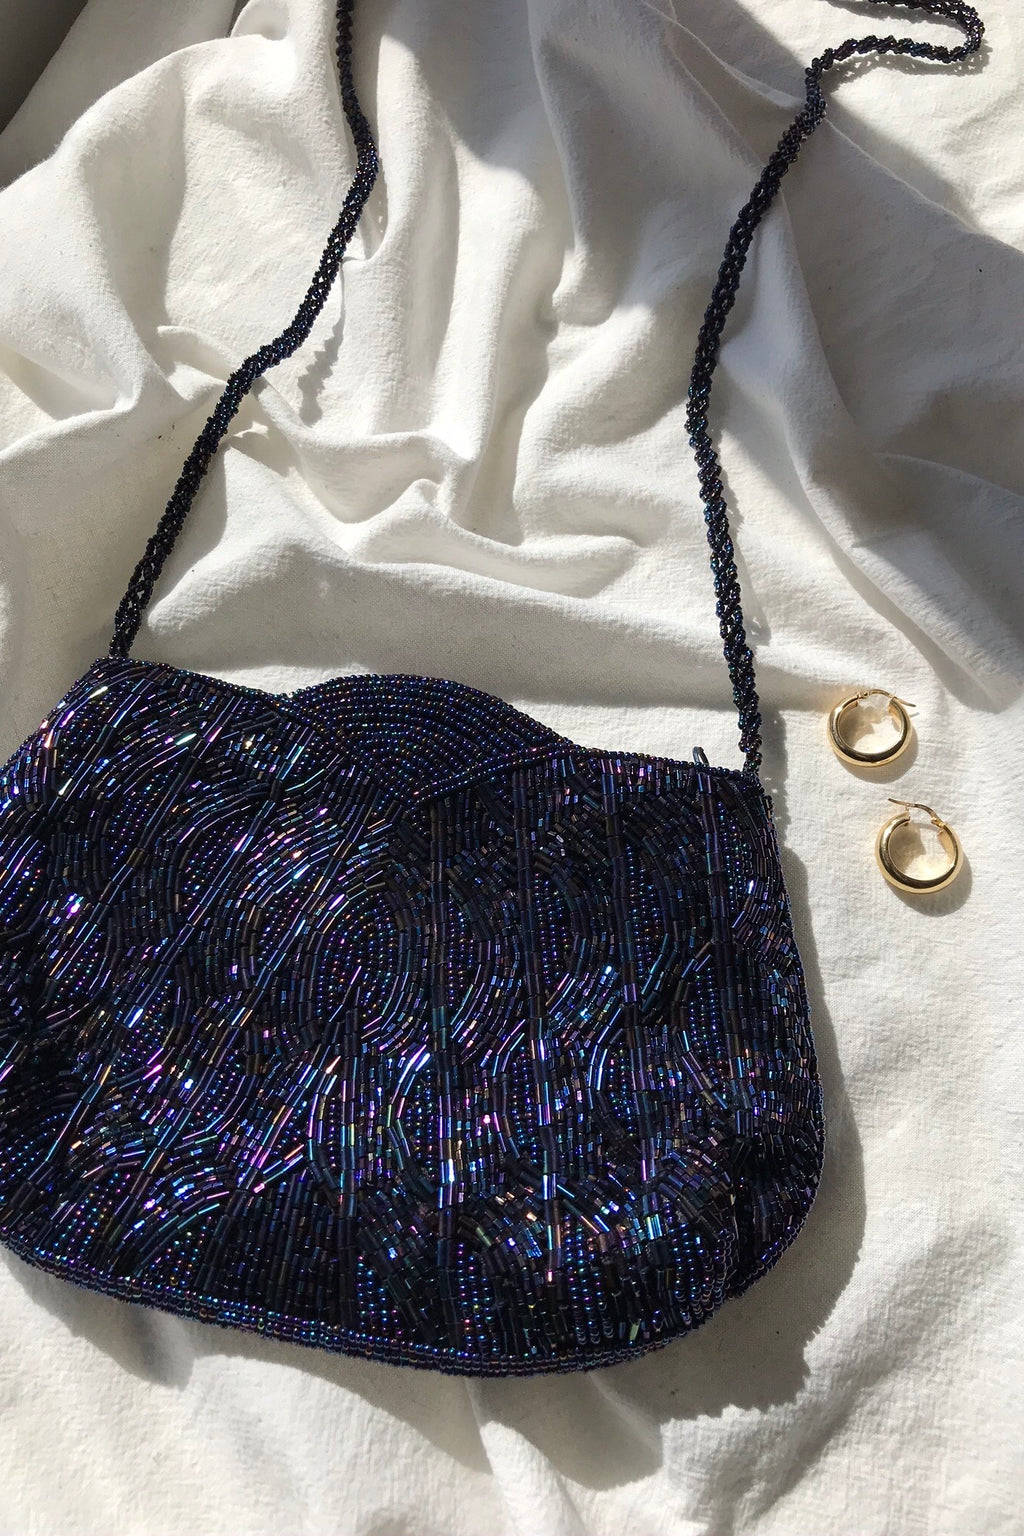 Vintage 1990s y2k Blue Sequinned Mini Handbag With Long Straps